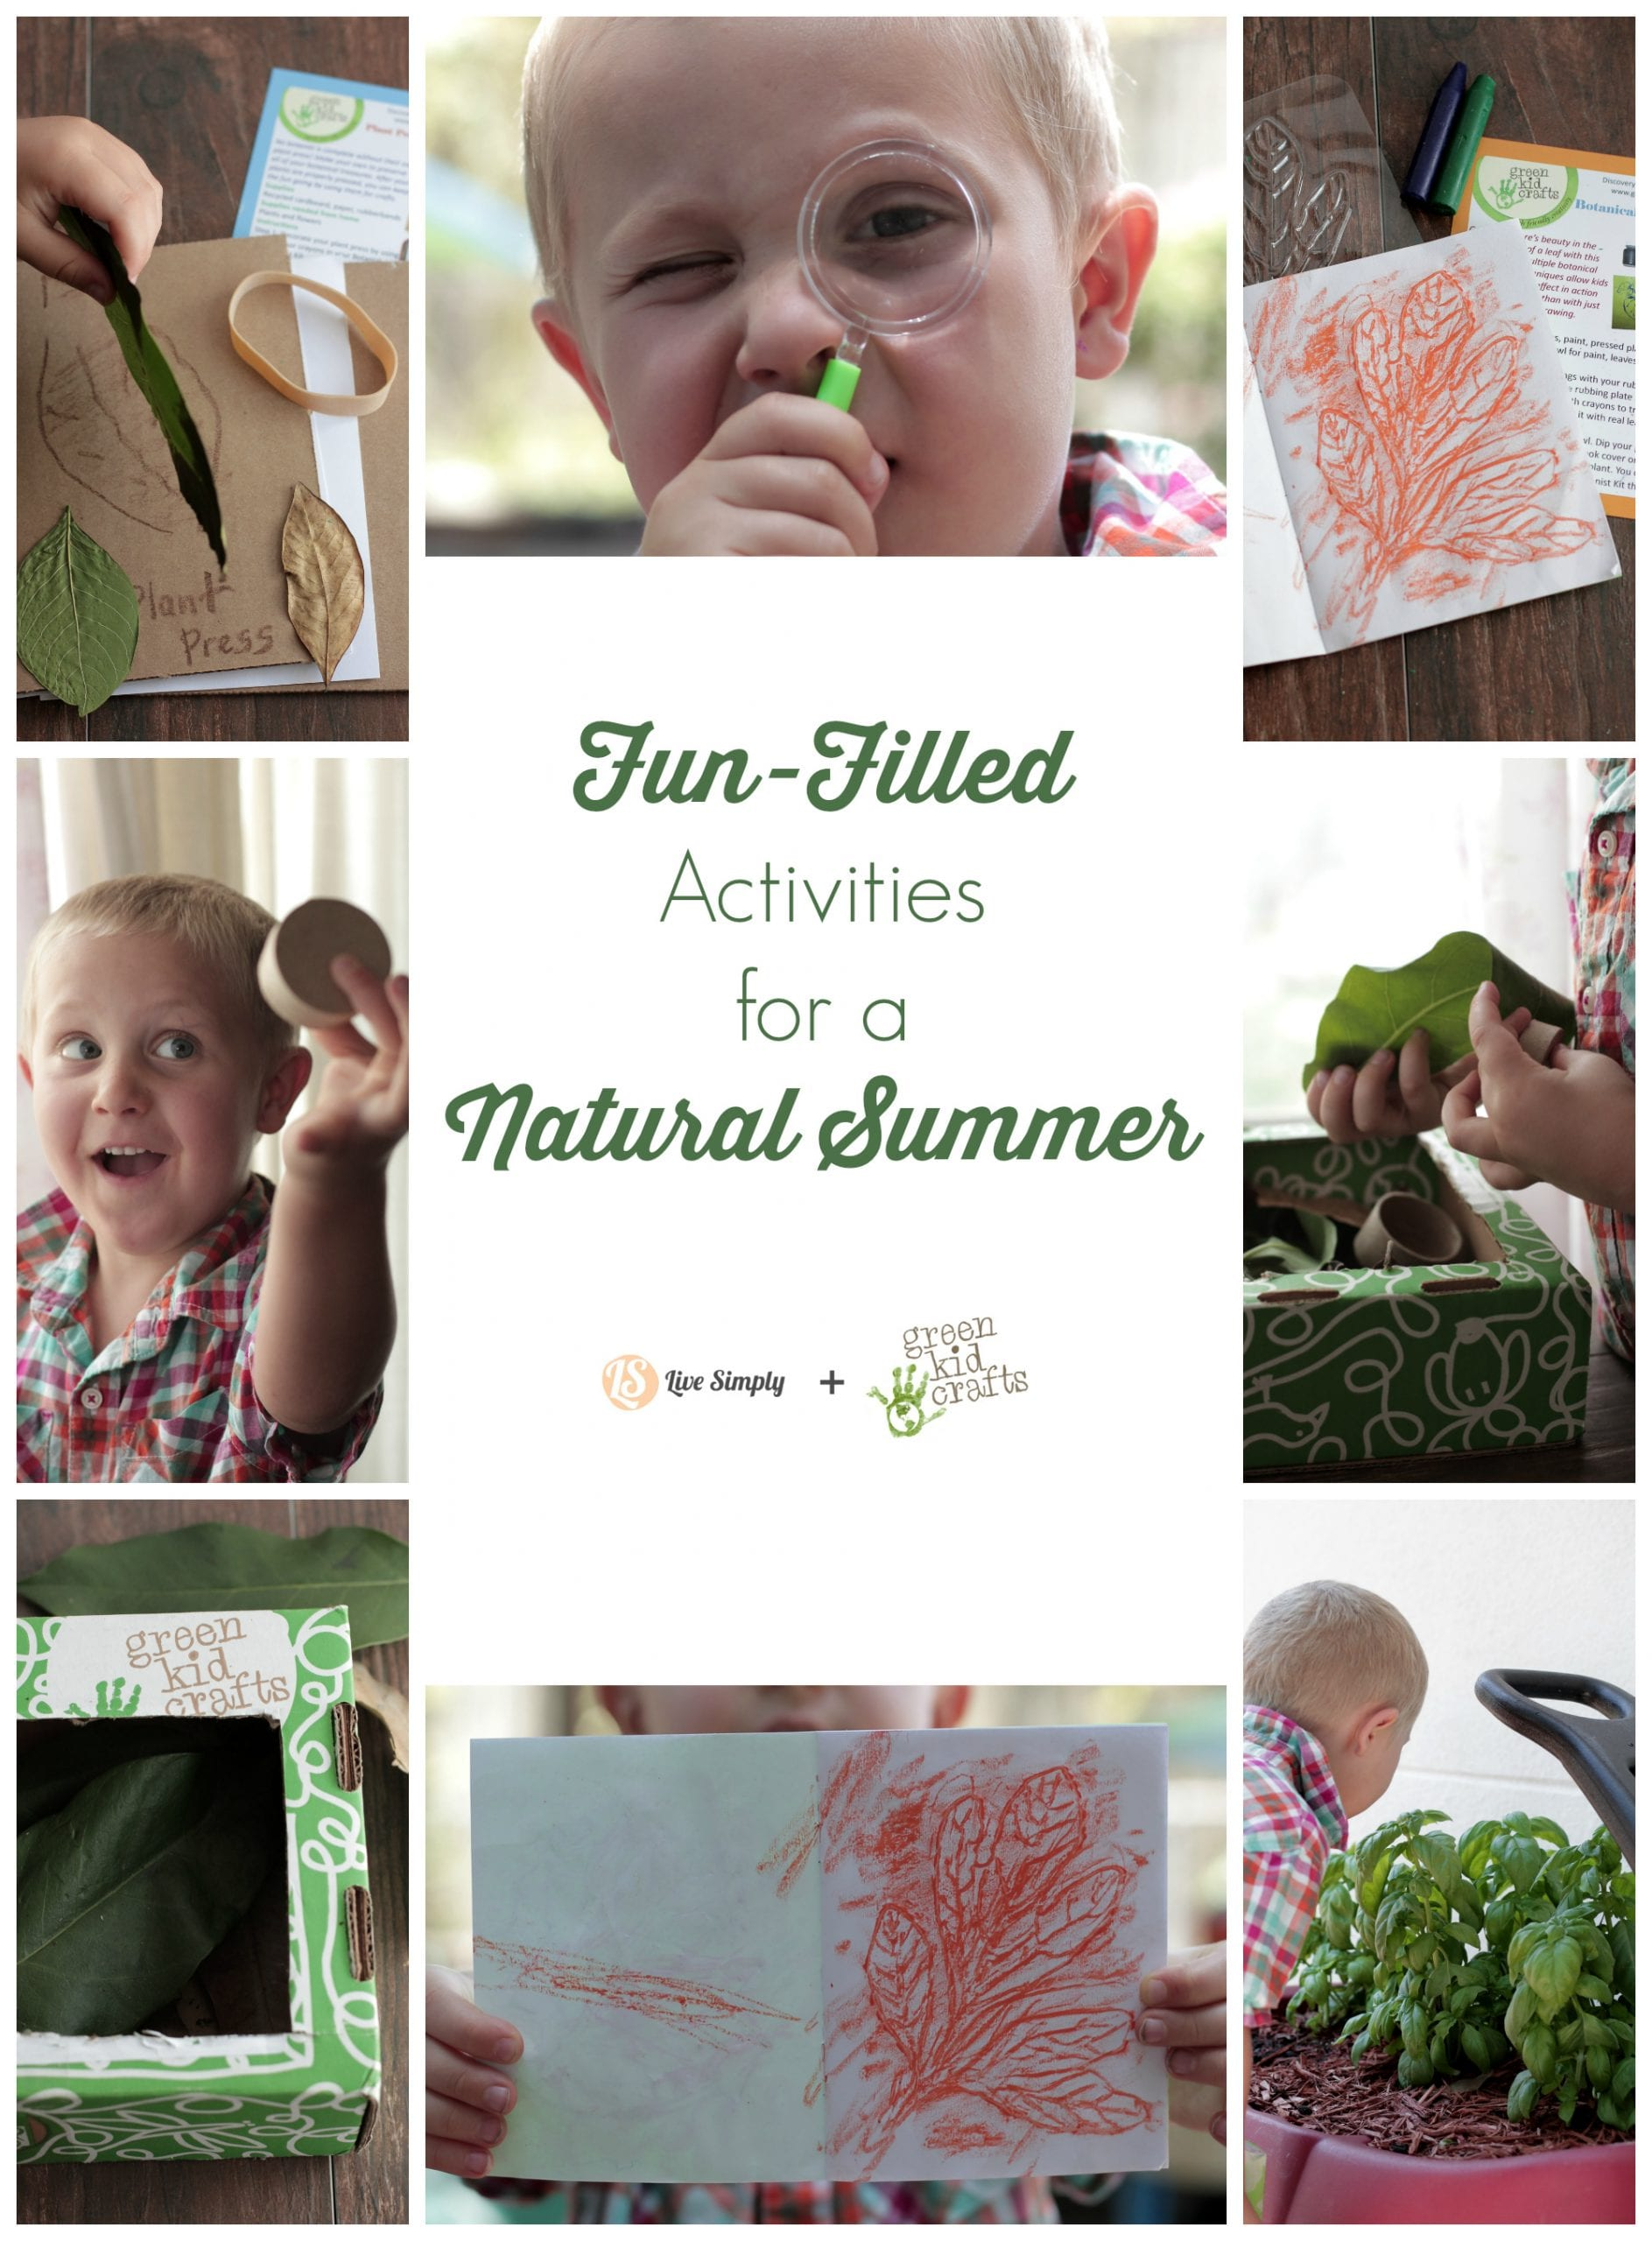 Fun-Filled Activities for a Natural Summer - Live Simply